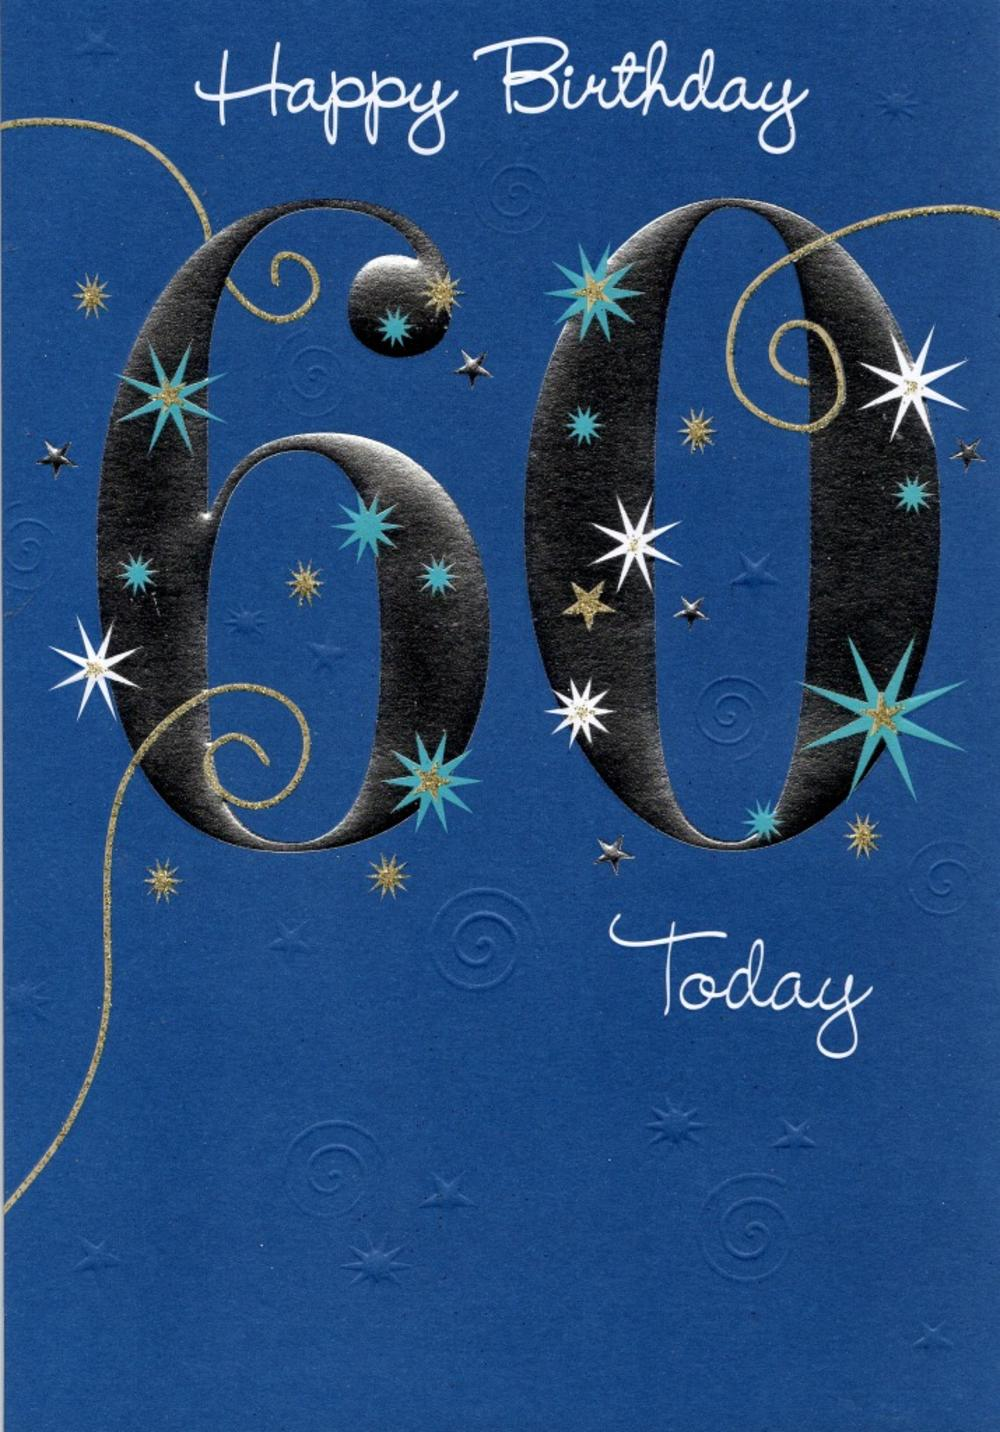 60th birthday card greetings birthday cards easyday happy 60th birthday greeting card cards love kates kristyandbryce Image collections